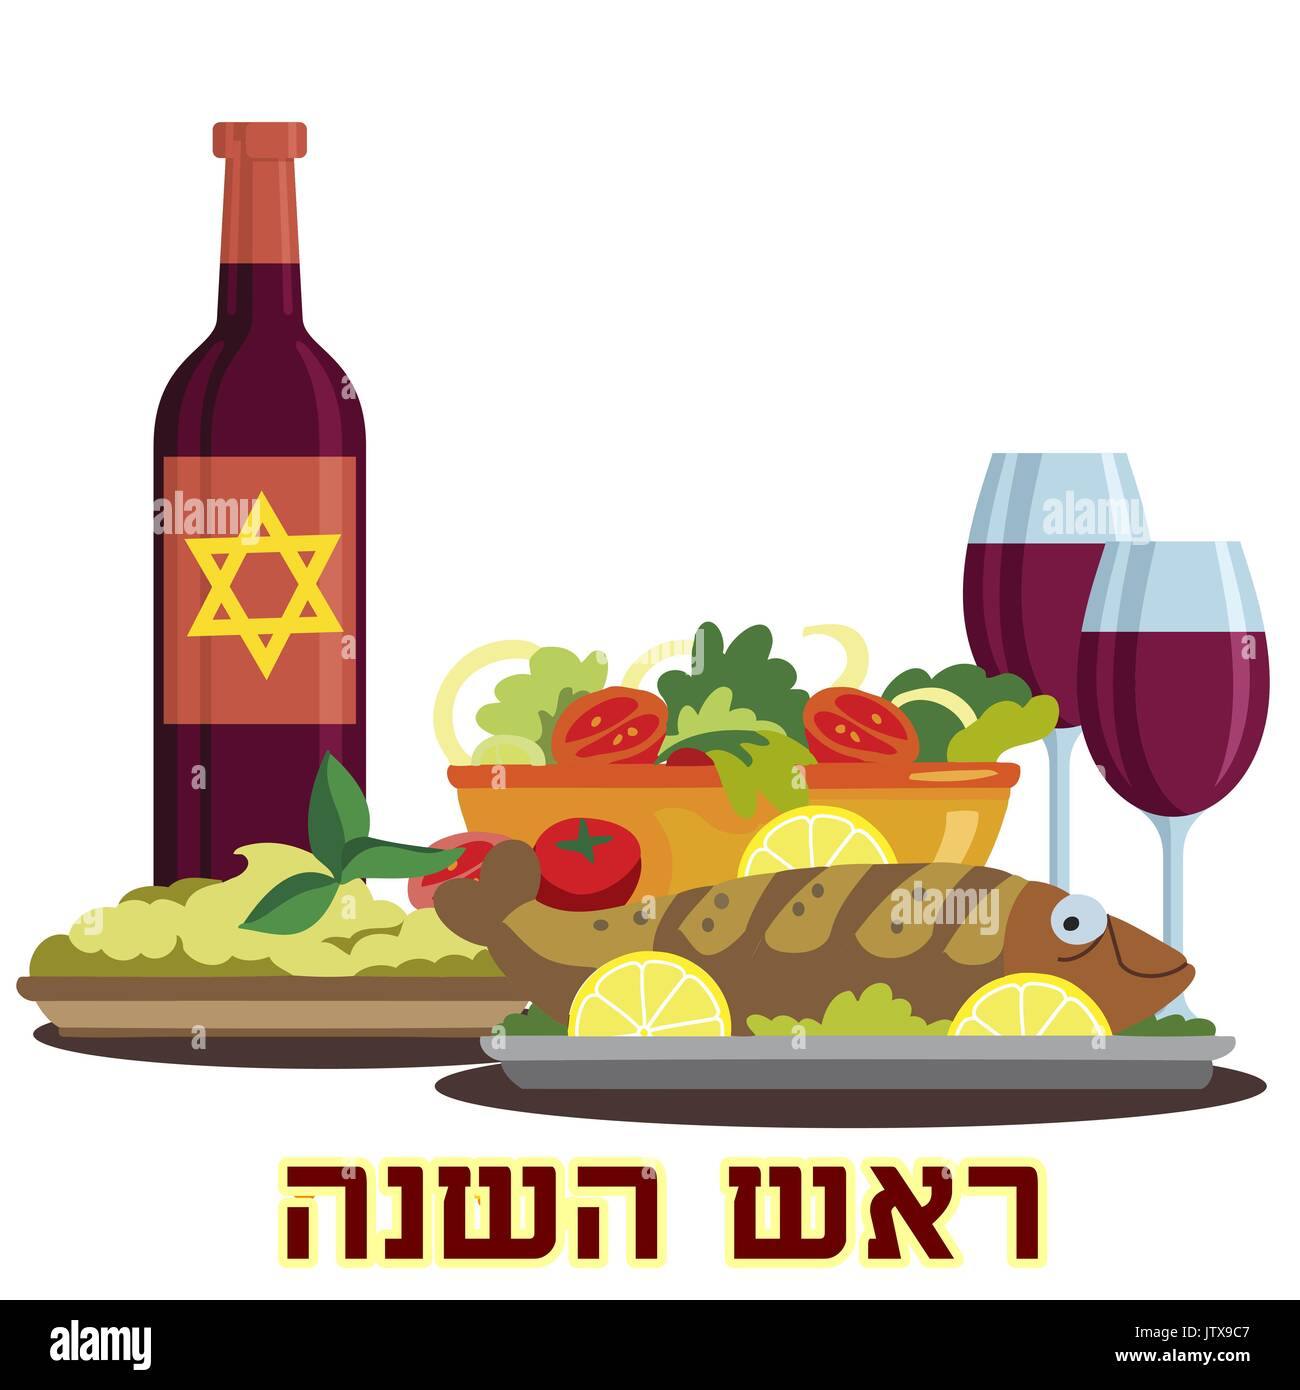 Happy Rosh Hashanah Jewish New Year Festive Table With Traditional